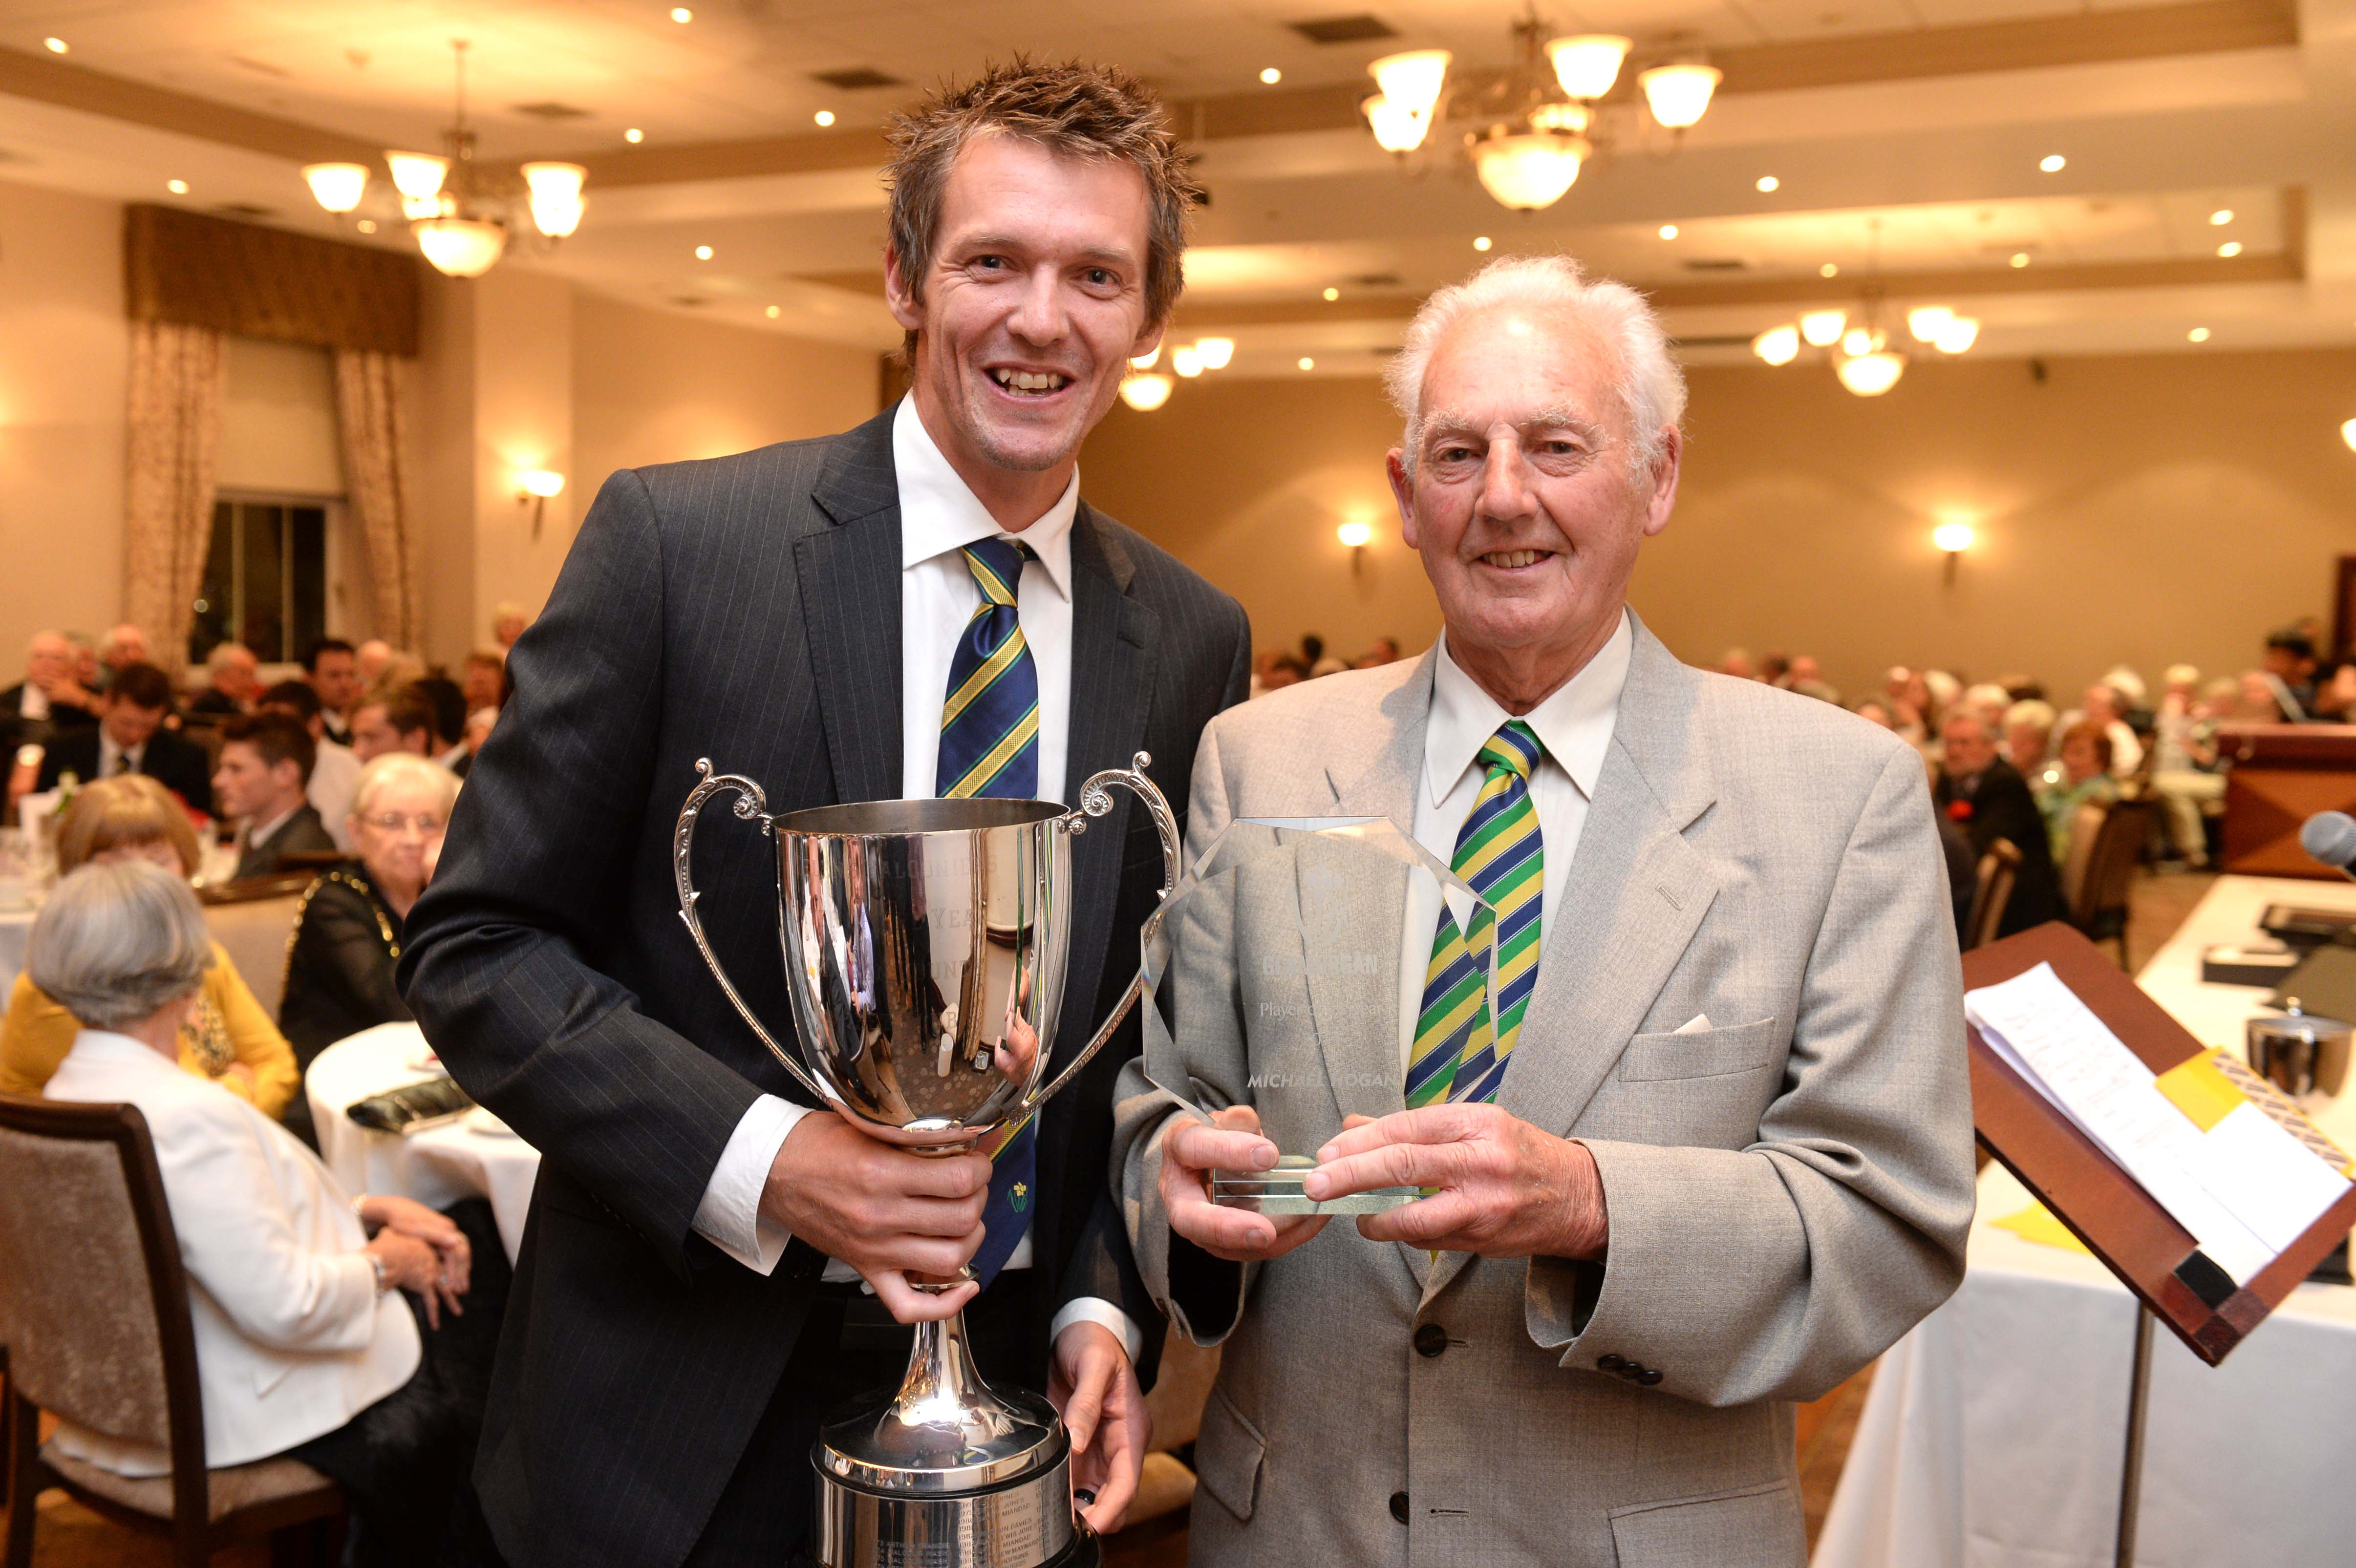 Michael Hogan - Balconiers' Player of the Year 2014 - receives his award the the Balconiers' President, Don Shepherd.